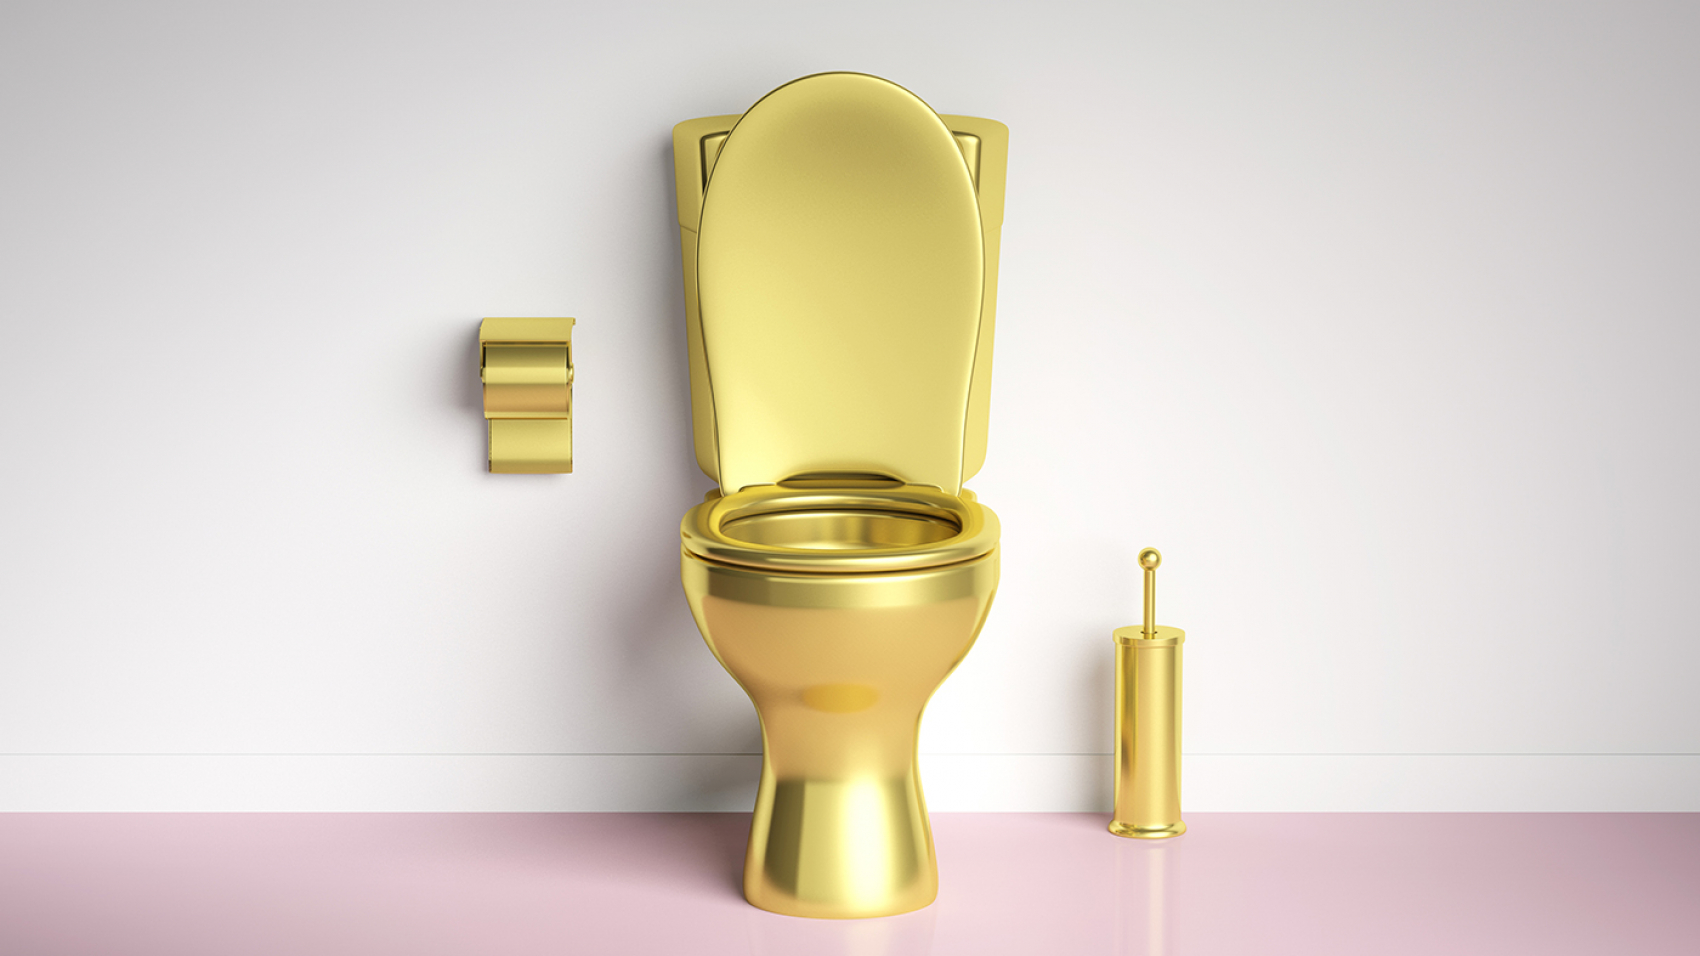 Luxury toilets. Golden toilet bowl and accesories on pink floor, white wall background, copy space. 3d illustration